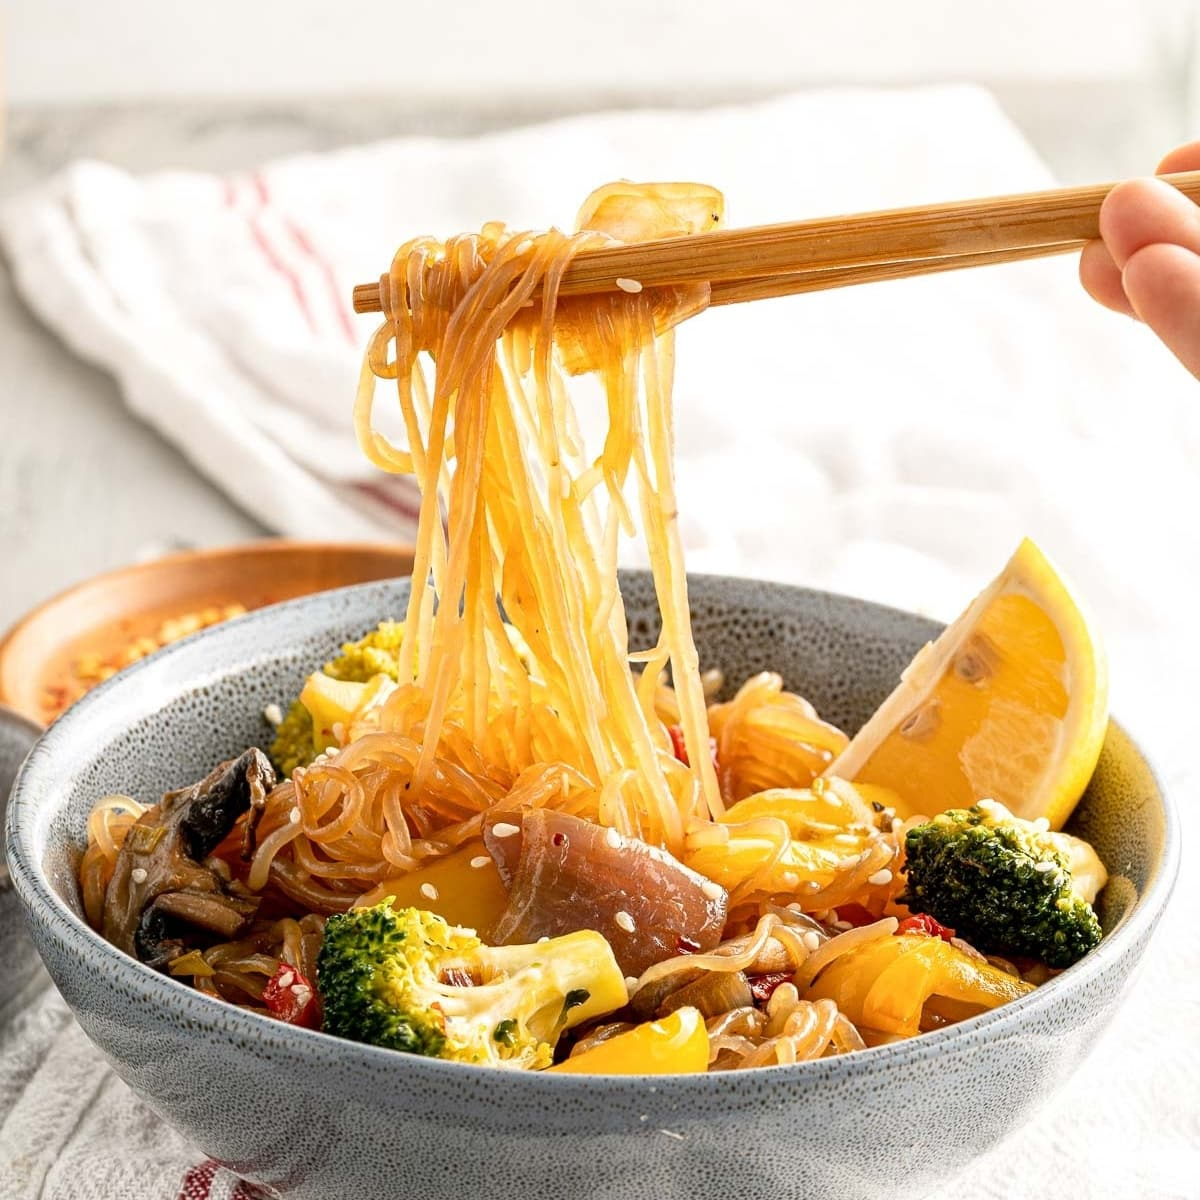 chopsticks lifting shirataki noodles covered in stir fry sauce with veggies in a bowl